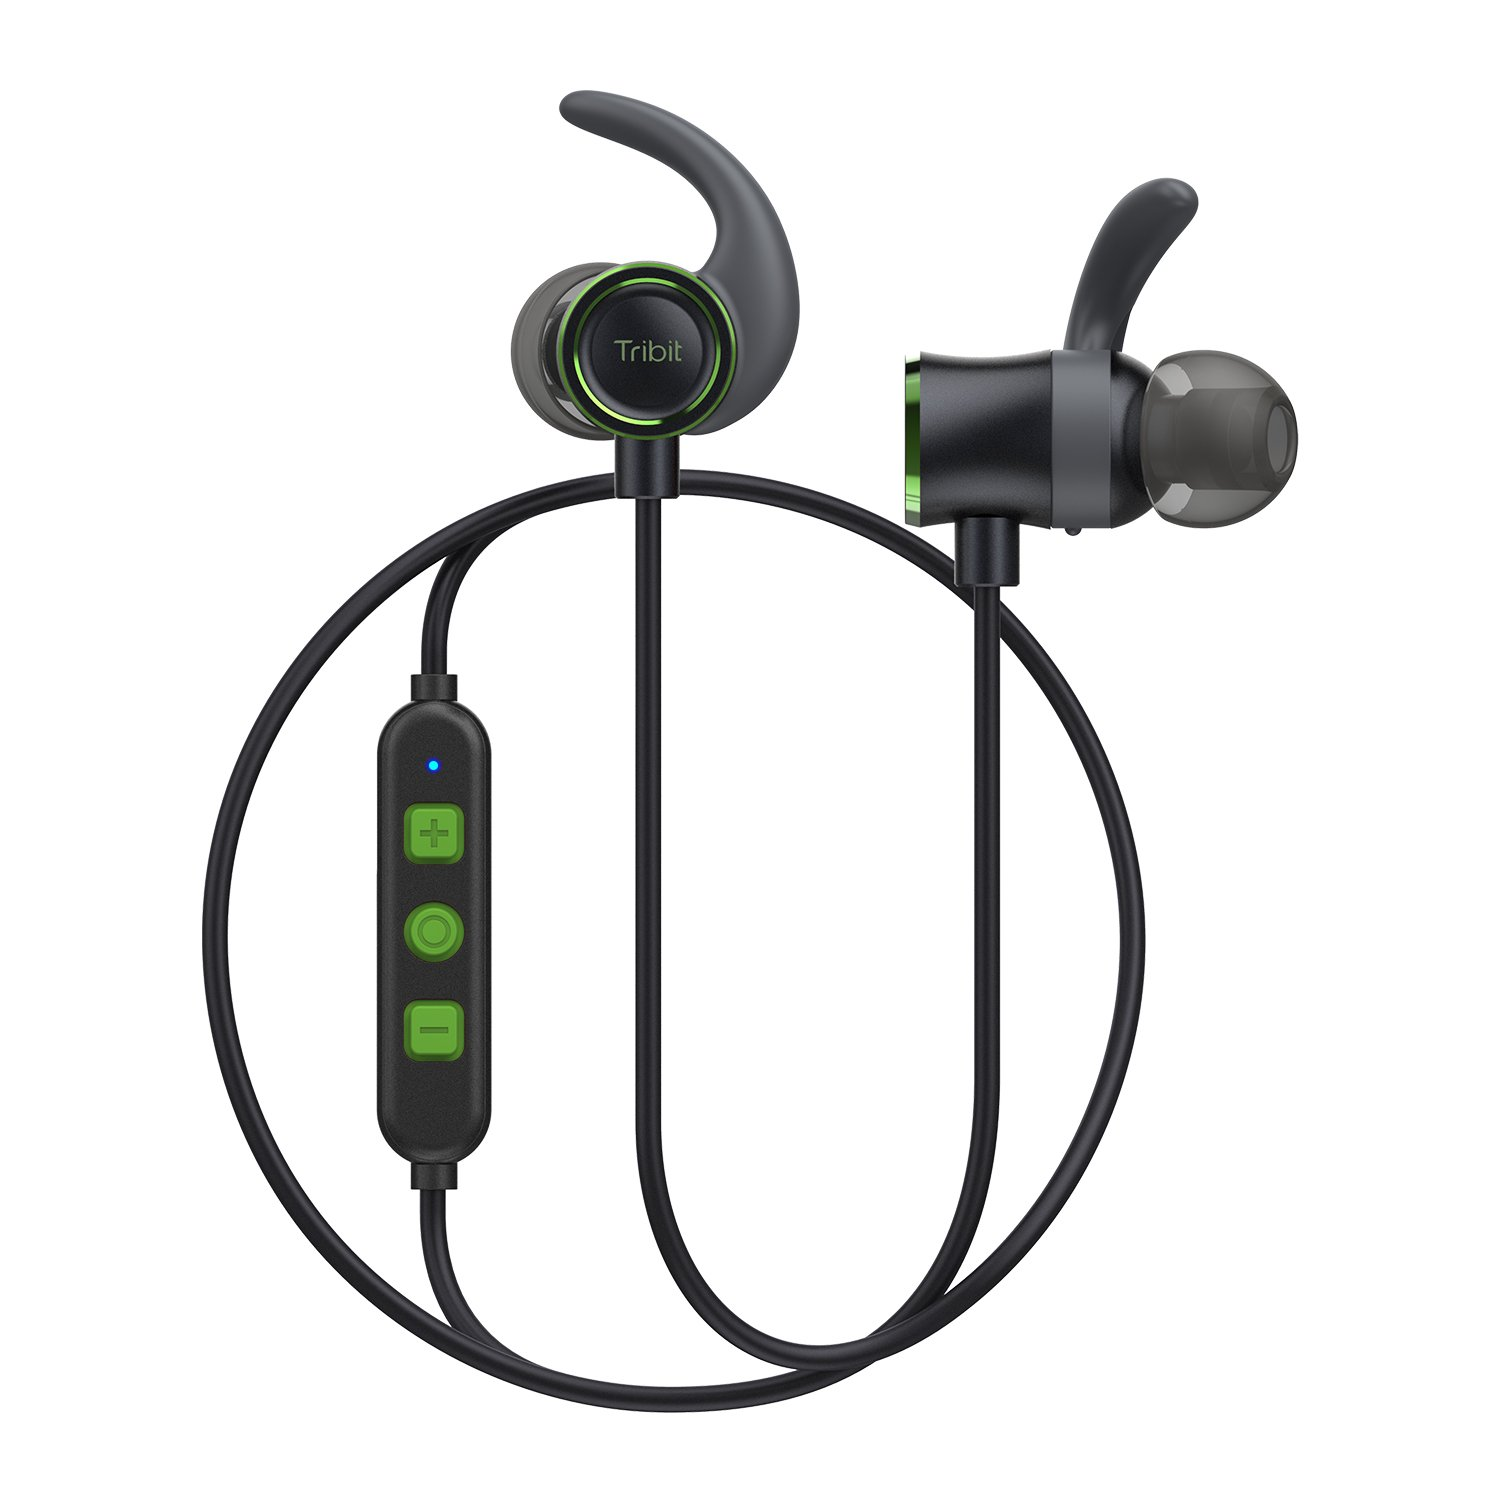 Tribit Wireless Bluetooth Earbuds - Running Headphones In Ear, Rock-Solid Bass, Up to 10 Hrs Playtime, IPX5 Waterproof, Built-in Mic, Magnetic - Workout Headphones, Forest Green by Tribit